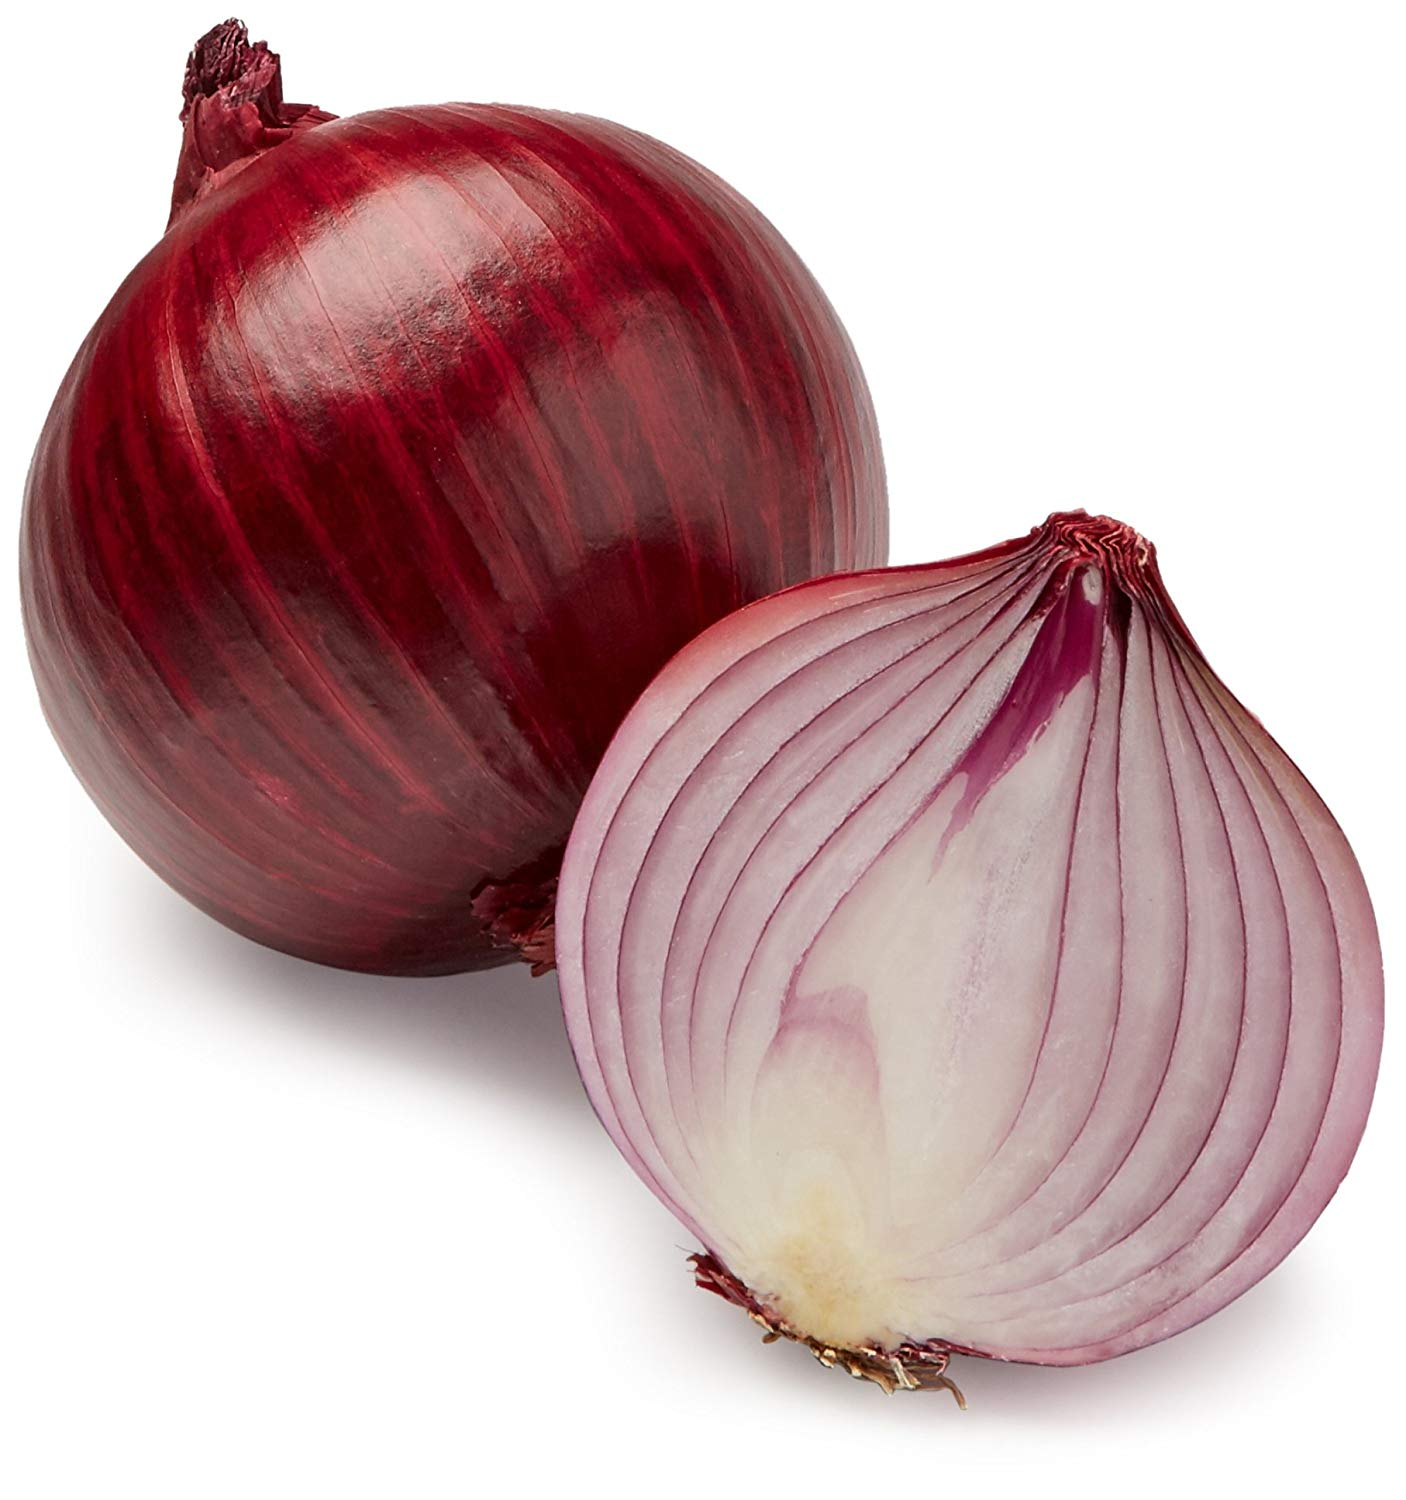 Health Benefits Of Onions: 5 Surprising Ways Onions Can Cleanse Your Body To Eliminate Disease